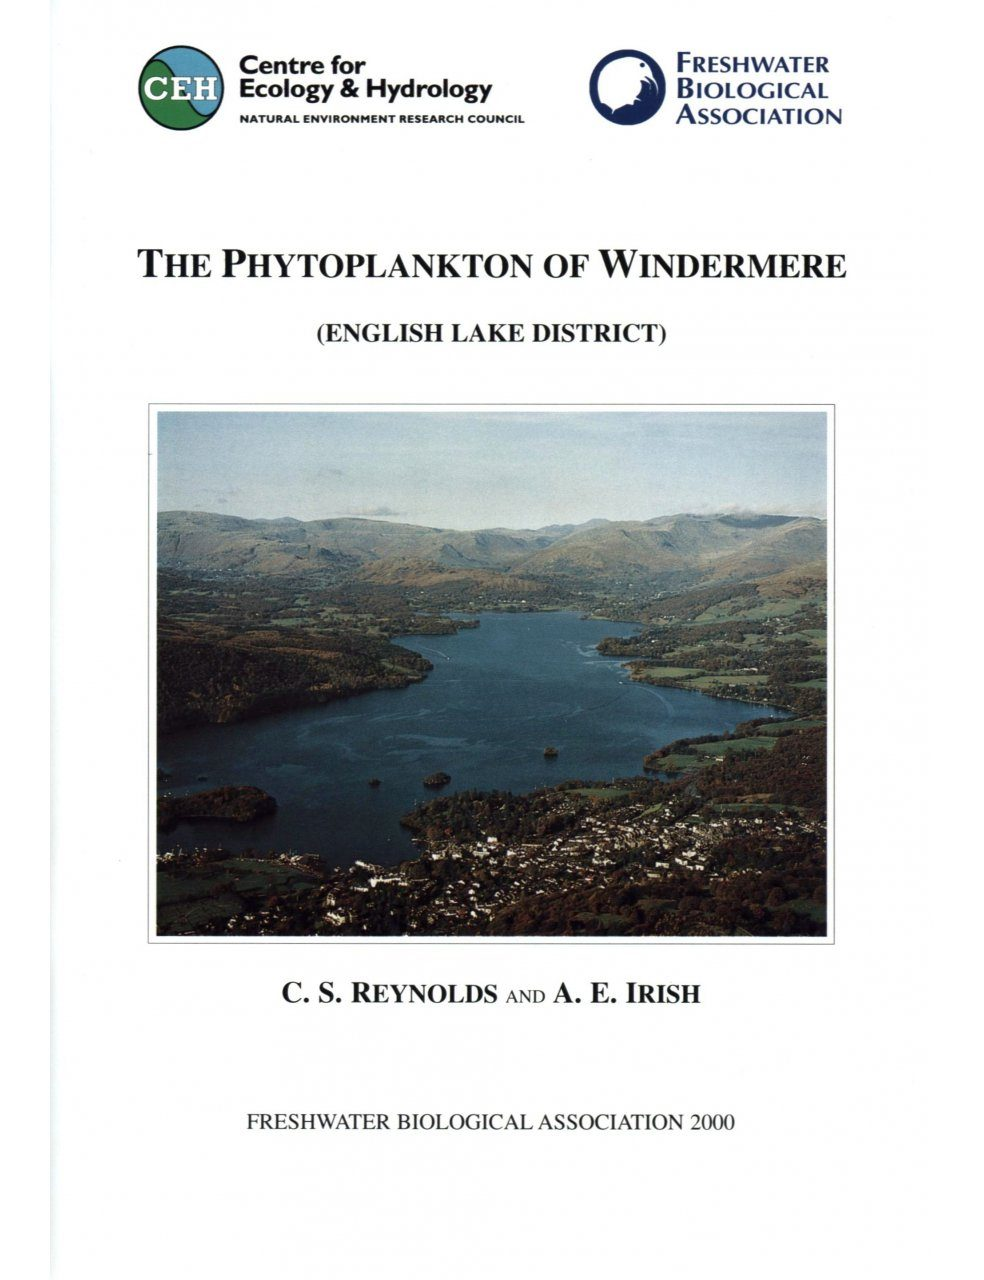 The Phytoplankton of Windermere (English Lake District)